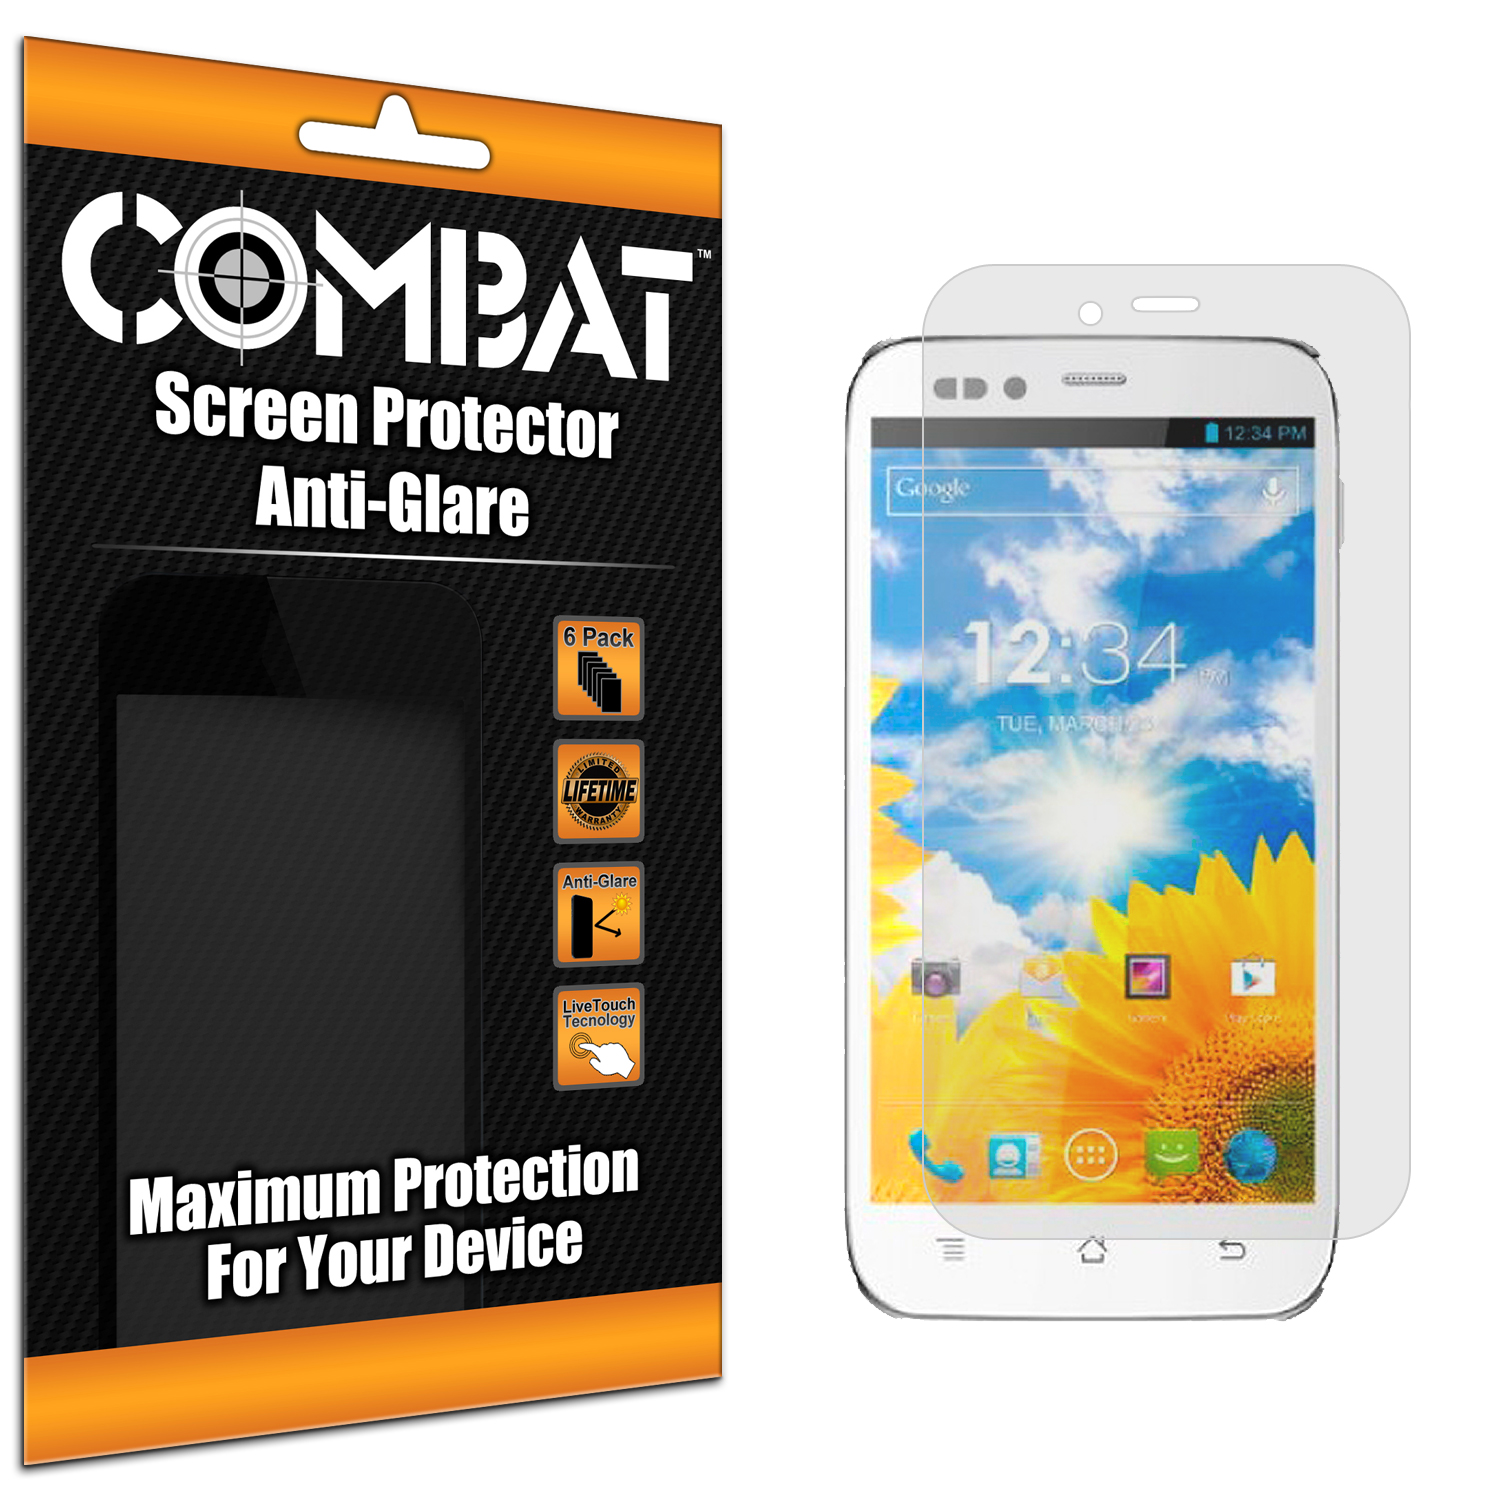 BLU Studio 5.0 Combat 6 Pack Anti-Glare Matte Screen Protector